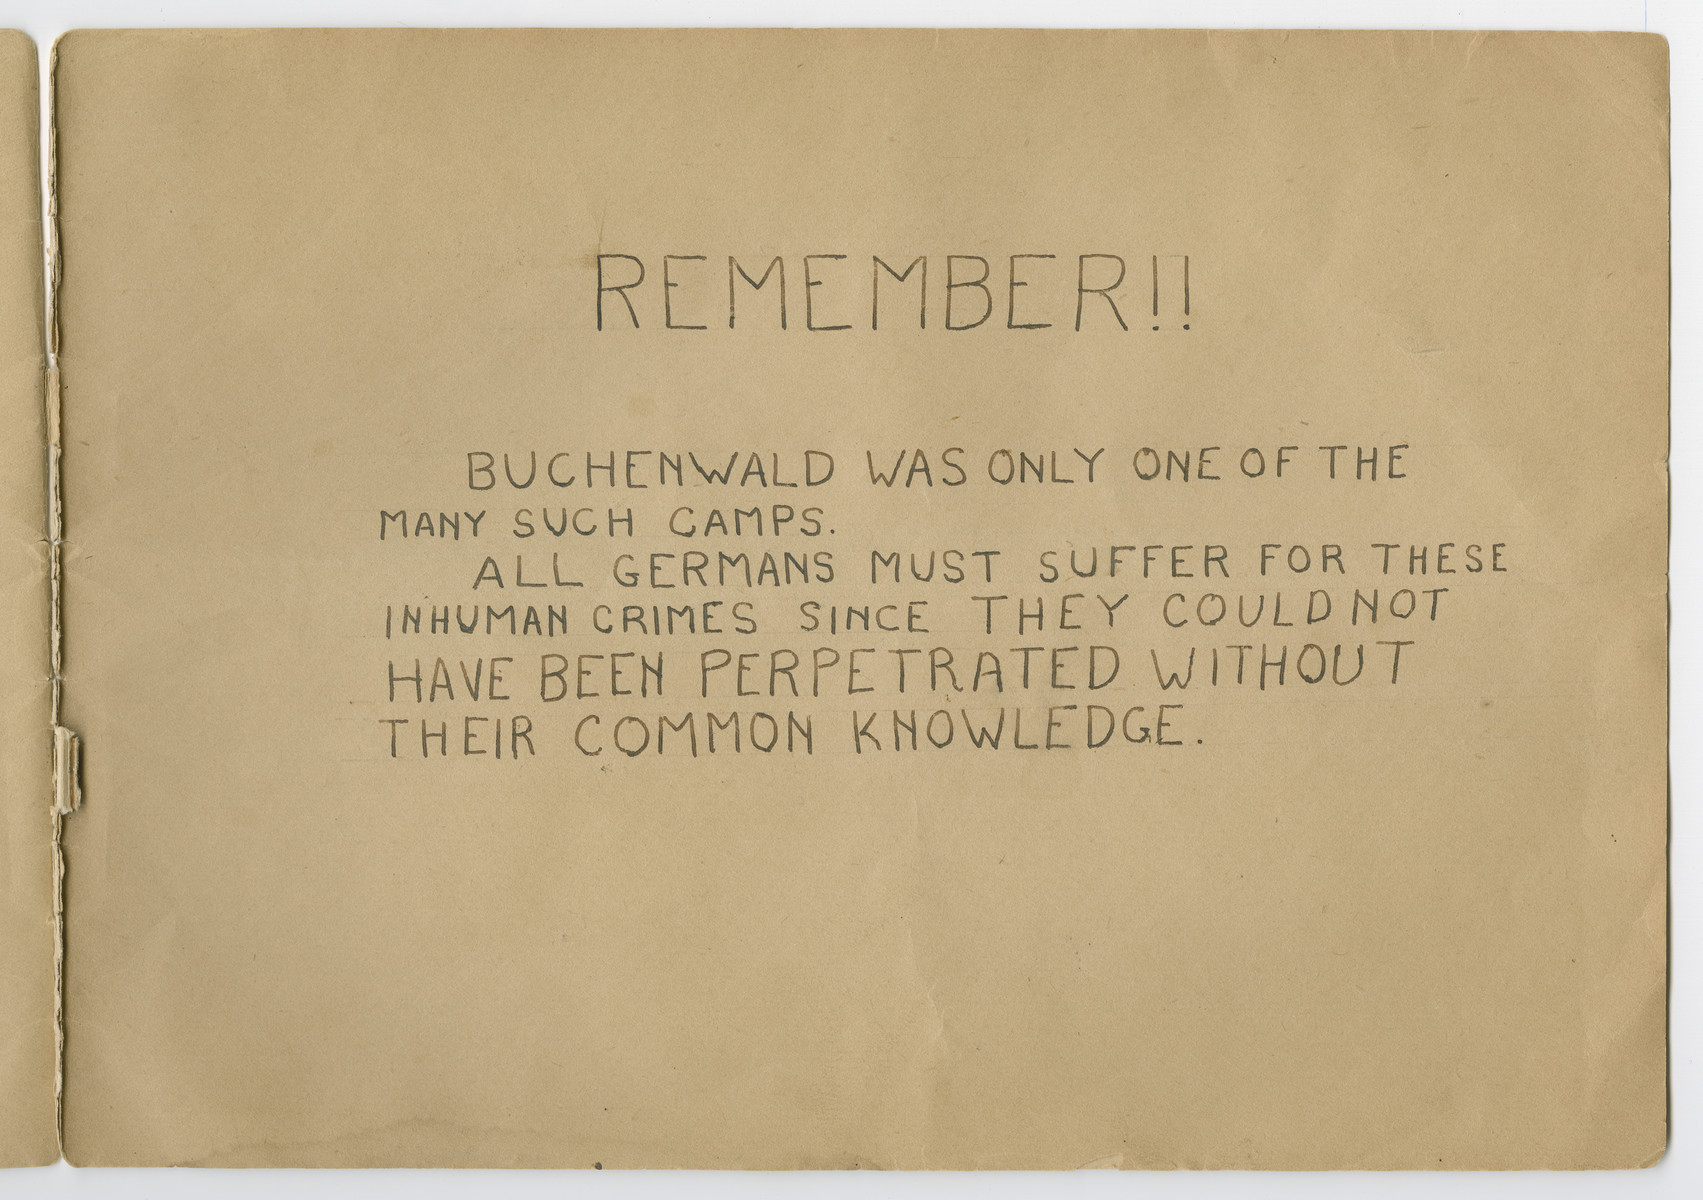 """Concluding page entitled REMEMBER!! of a photograph album titled """"Buchenwald/or a Glance at German """"Kultur"""""""" by Murray Bucher."""